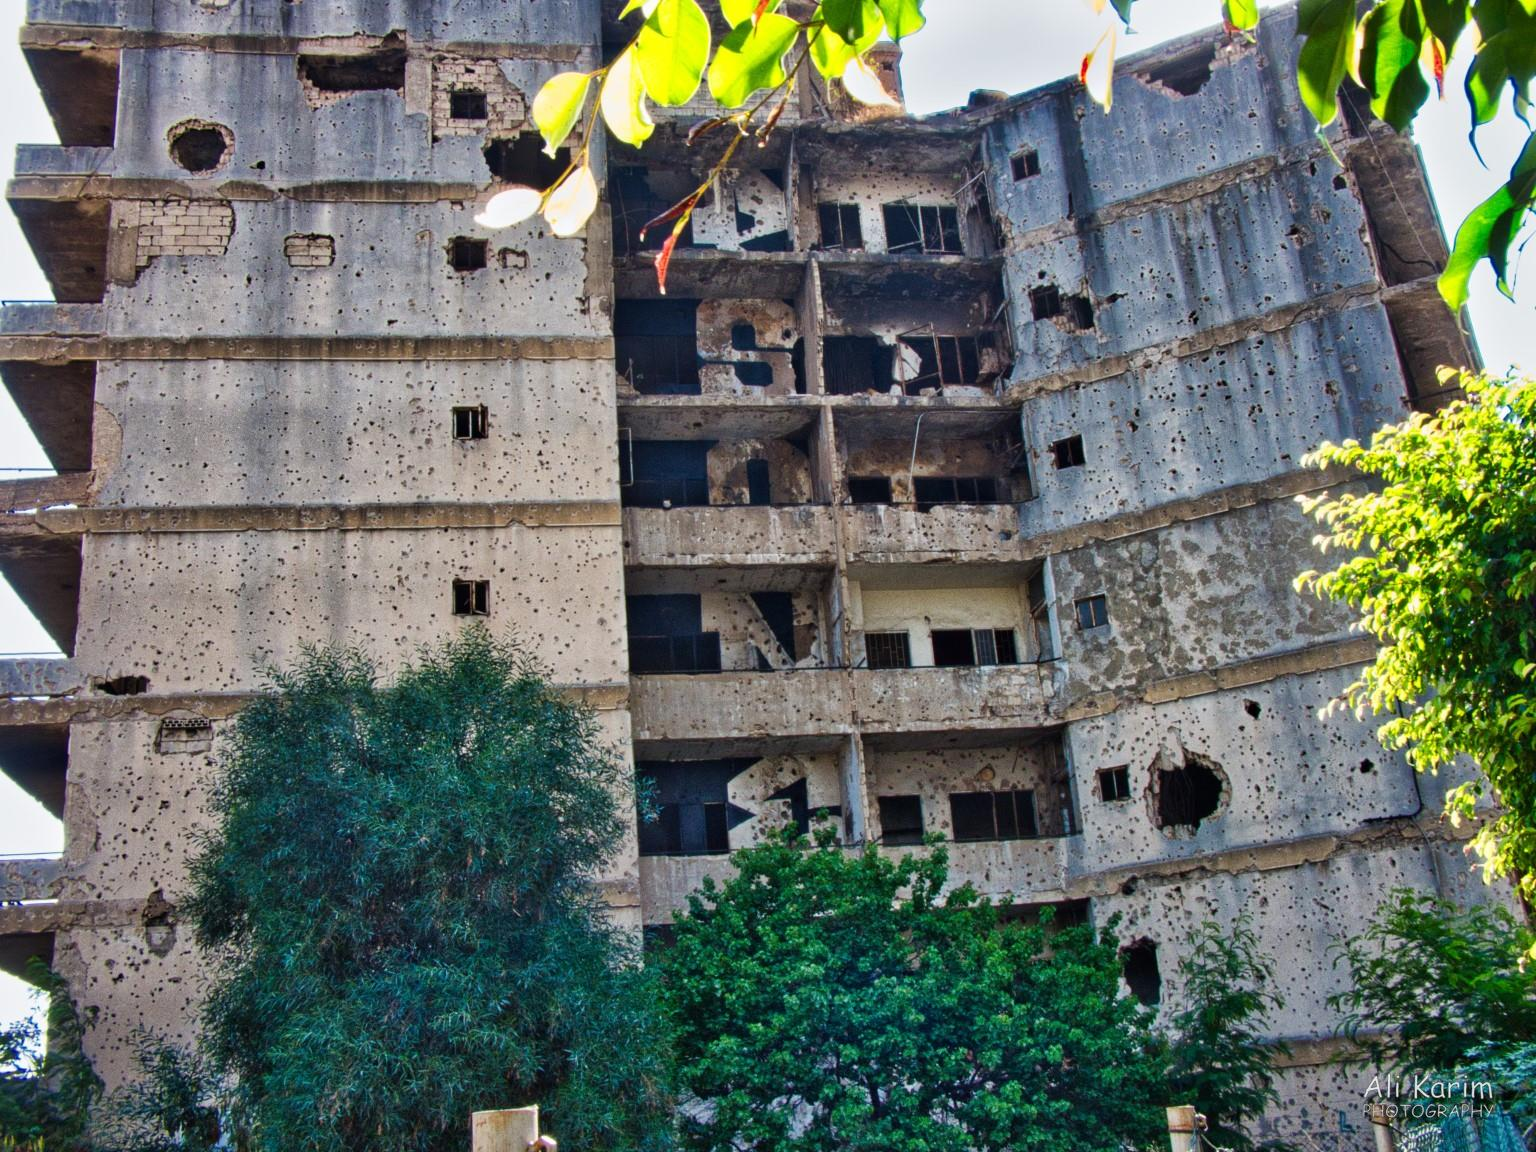 Building in much worse shape with bullet and mortar shell holes